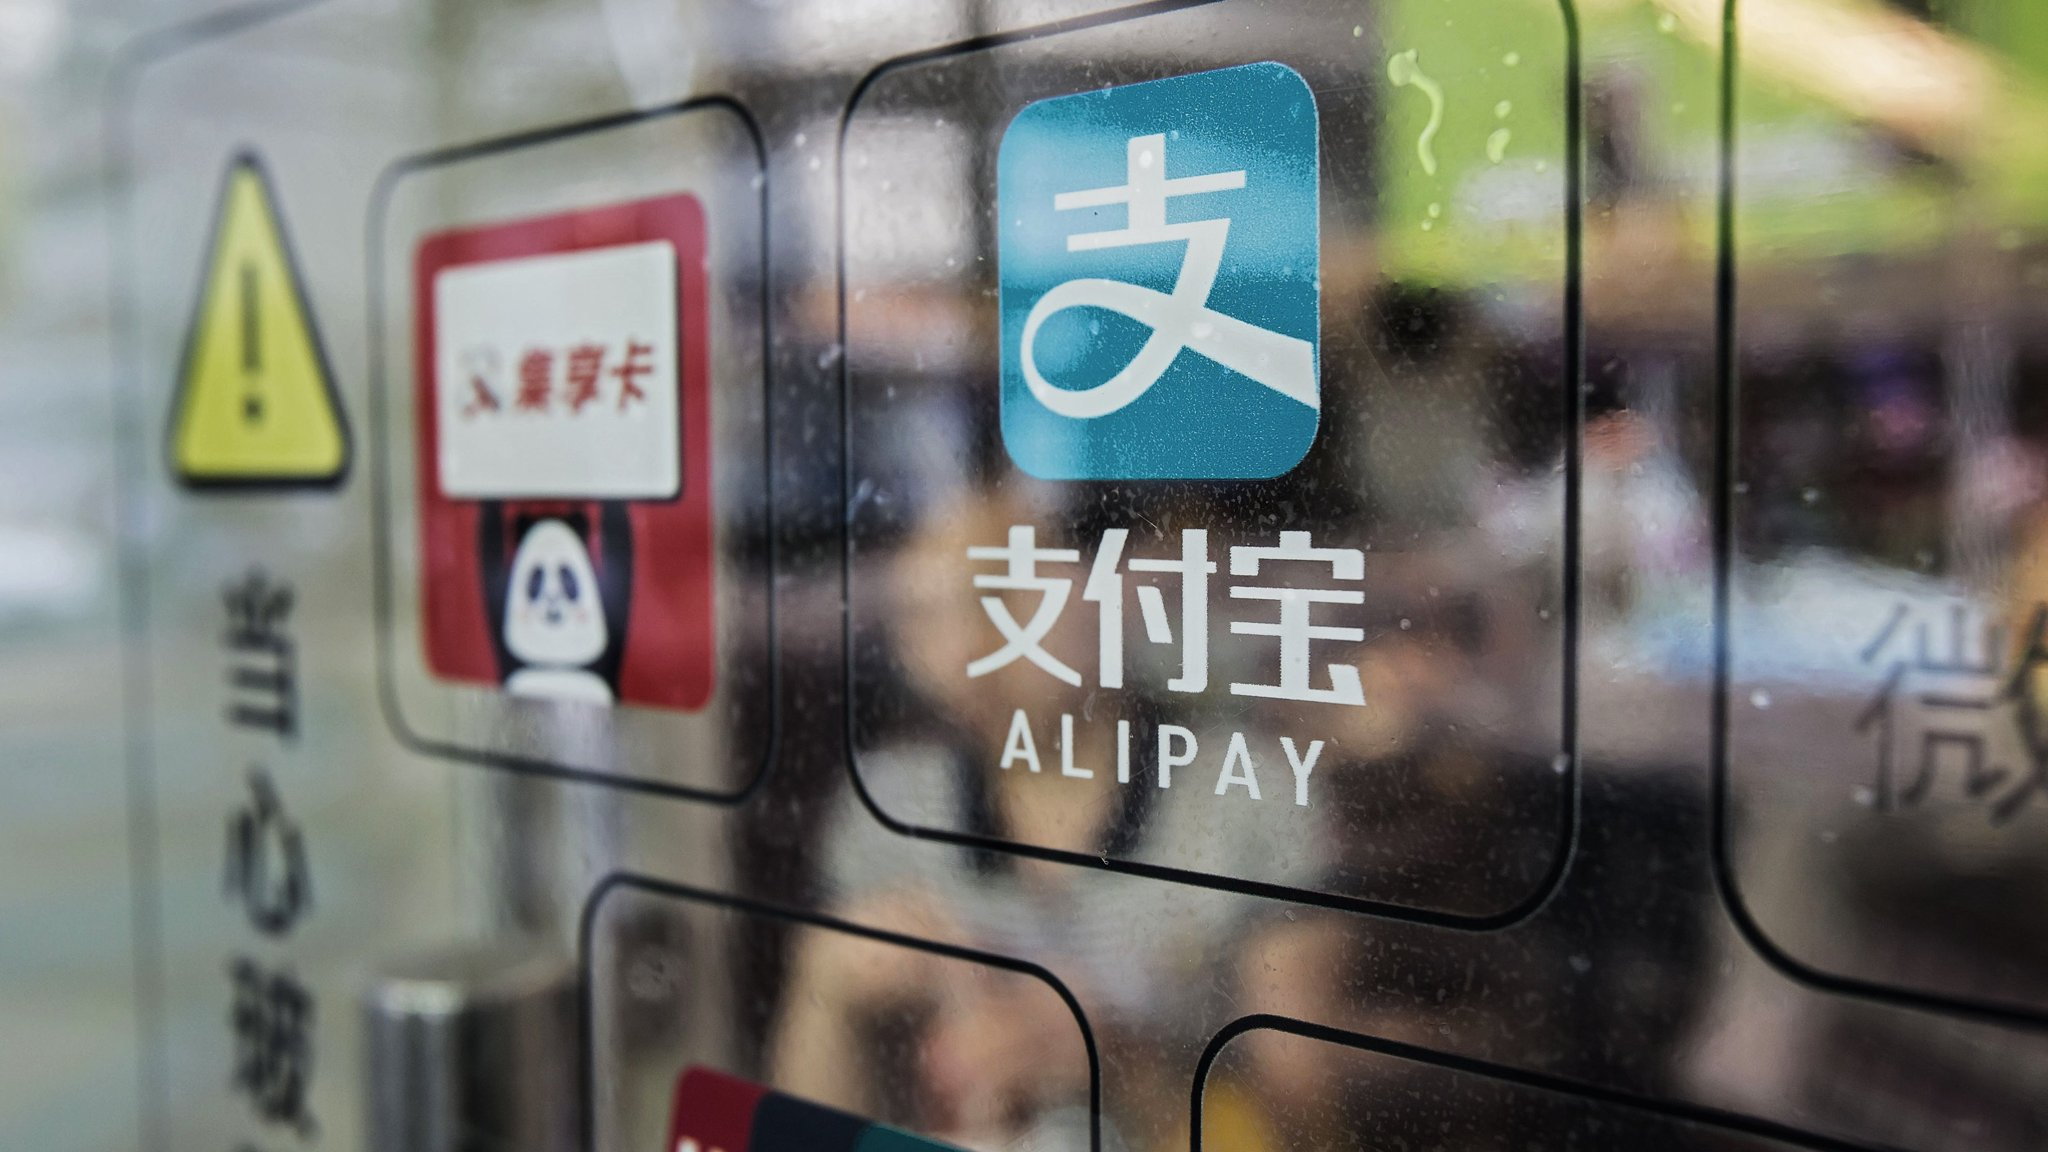 China moves to impose order on mobile payments boom